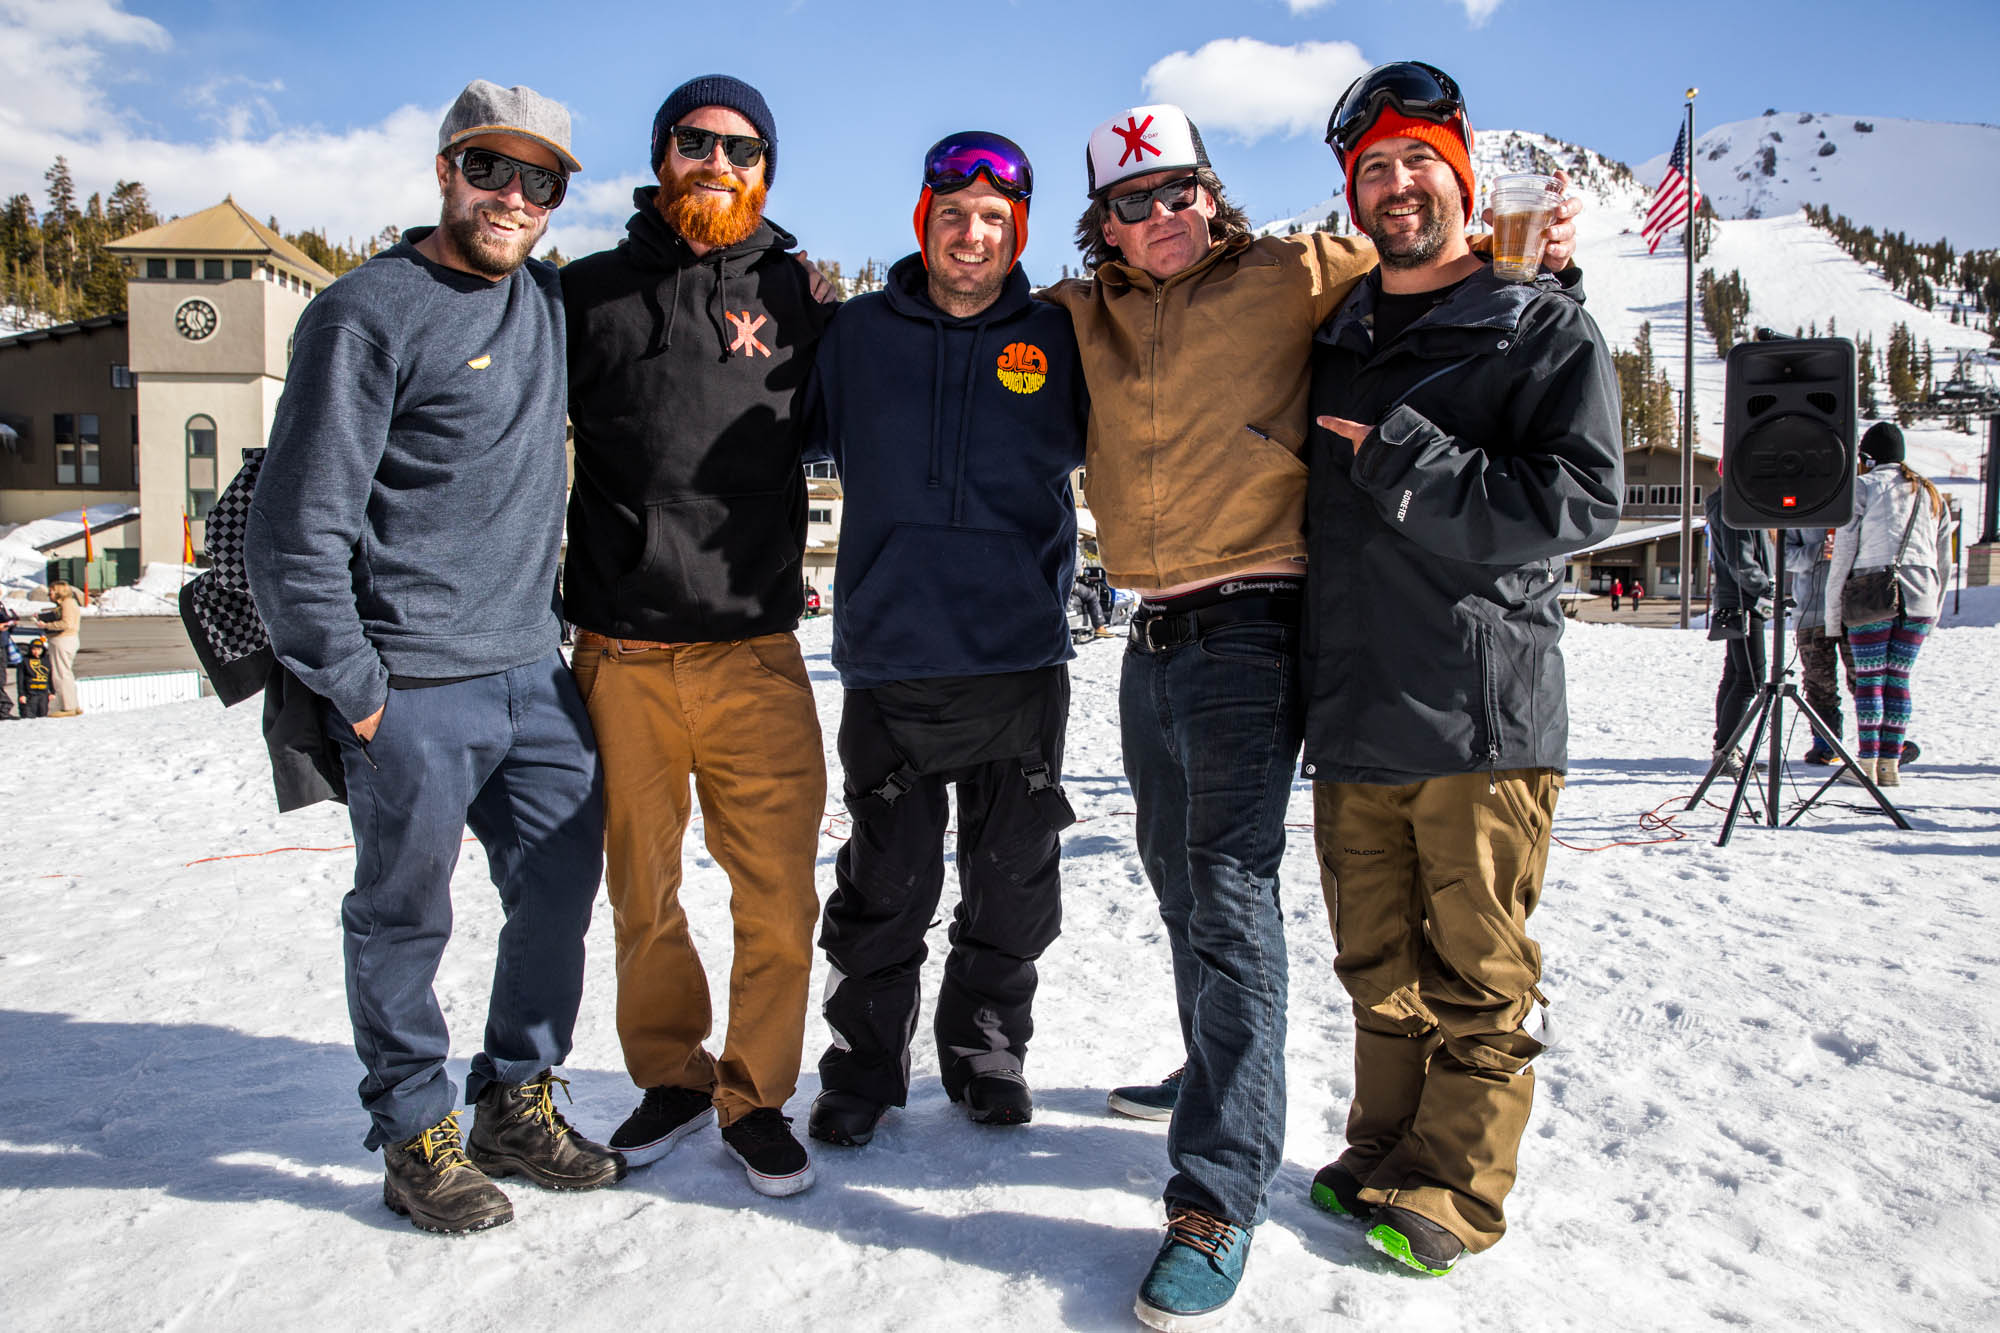 From L to R: Ryan Boyes, a thoroughly bearded Pat Moore, the maestro Billy Anderson, the legendary Shaun Farmer and Volcom's Oren Tanzer -- formerly of Mammoth Unbound and a undeniable influence on terrain park evolution.